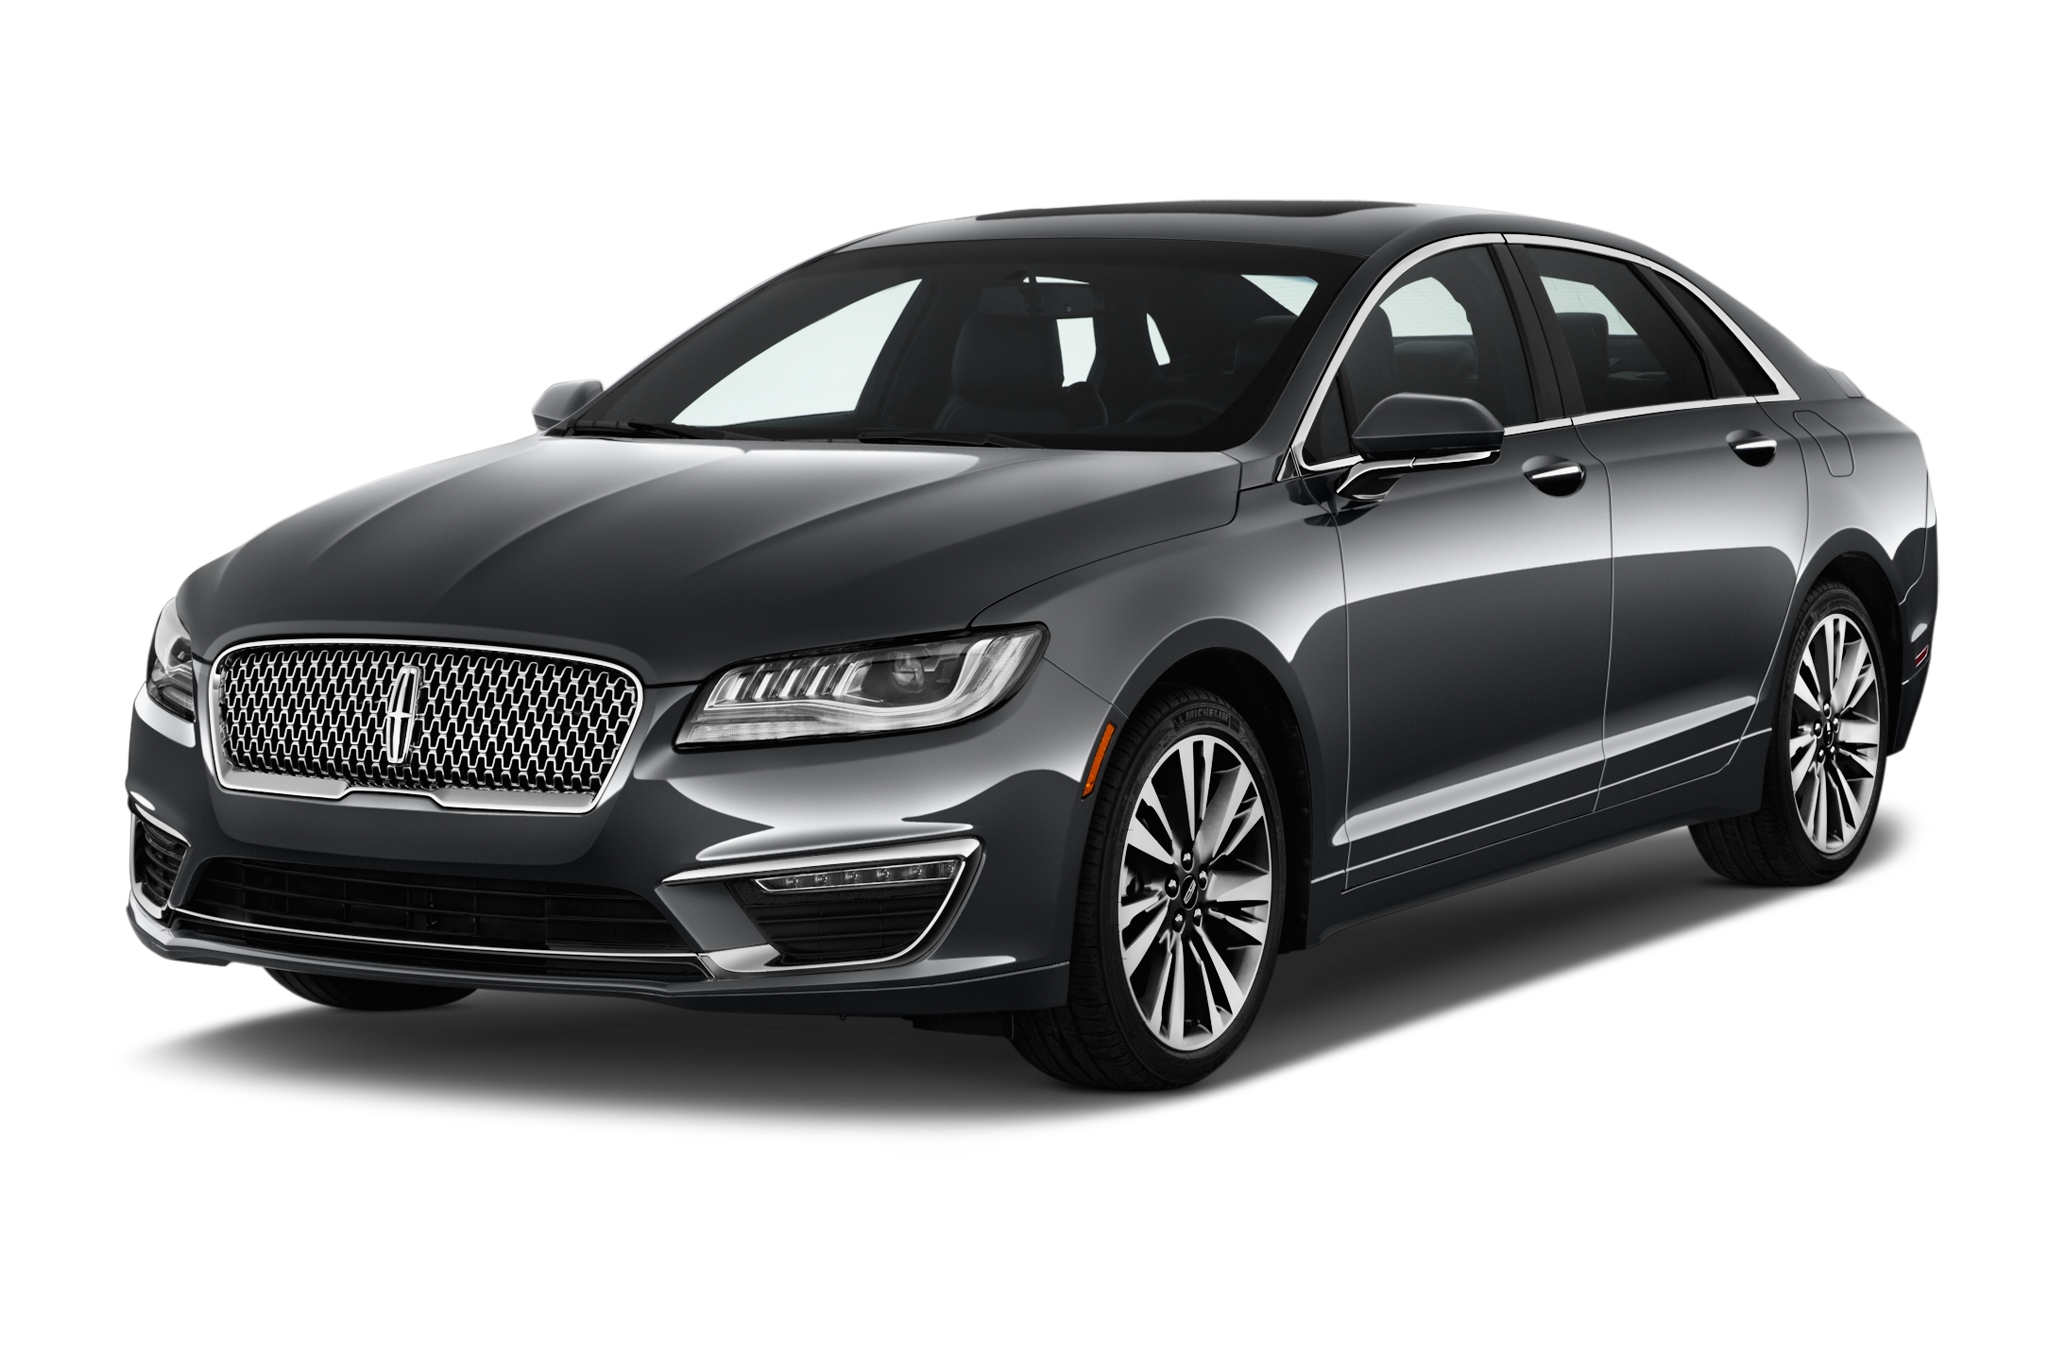 2017 lincoln mkz hybrid select fwd overview msn autos. Black Bedroom Furniture Sets. Home Design Ideas